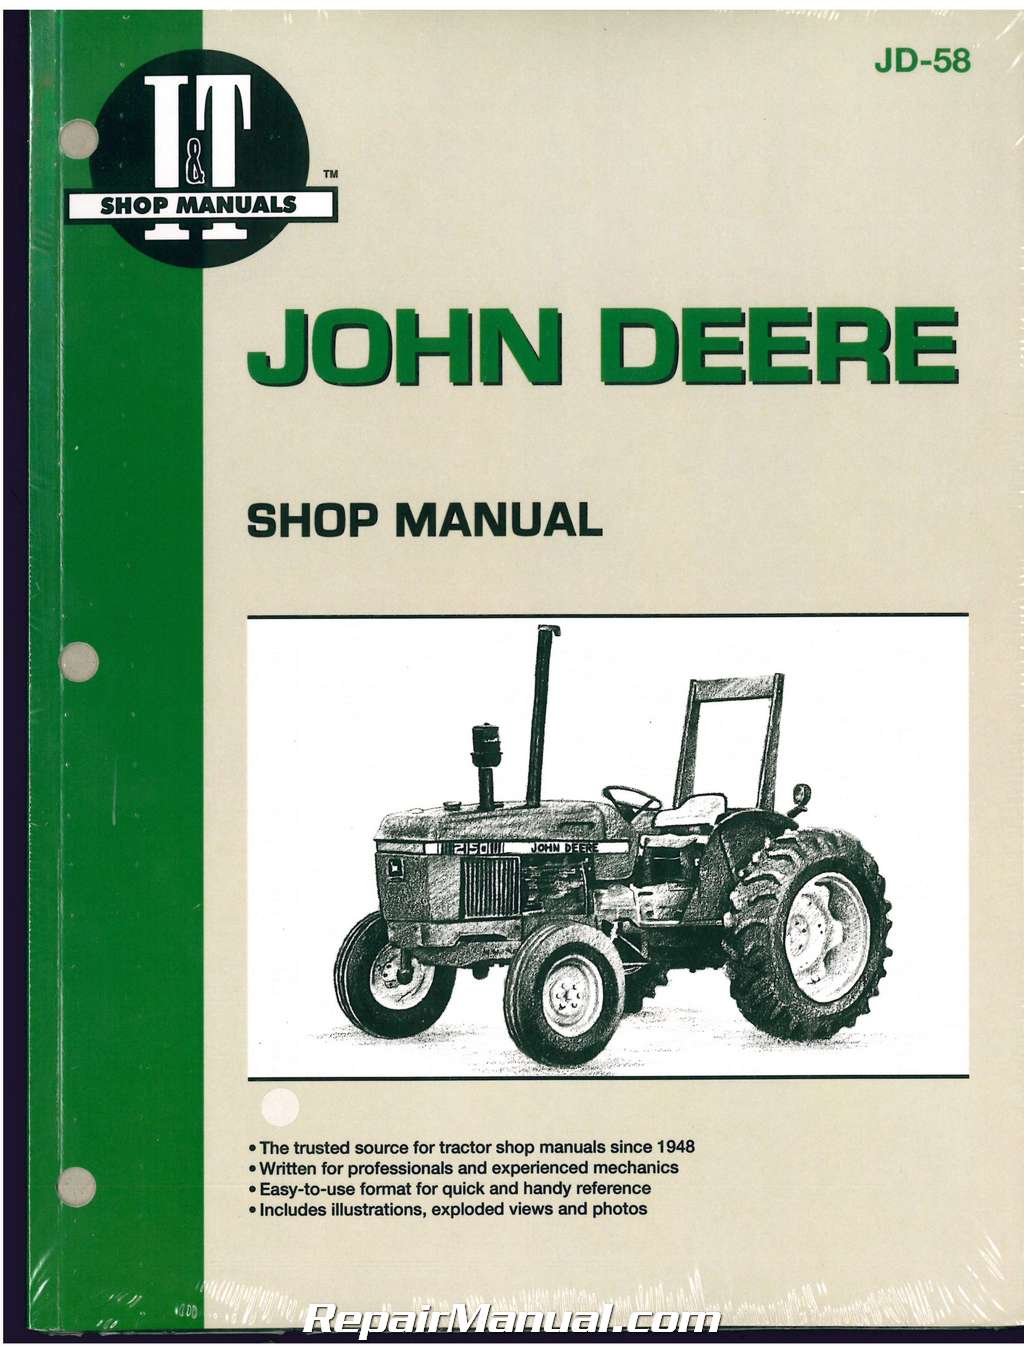 hight resolution of john deere 2555 wiring diagram wiring diagram todays john deere 3020 wiring schematic john deere 4630 tractor wiring harness